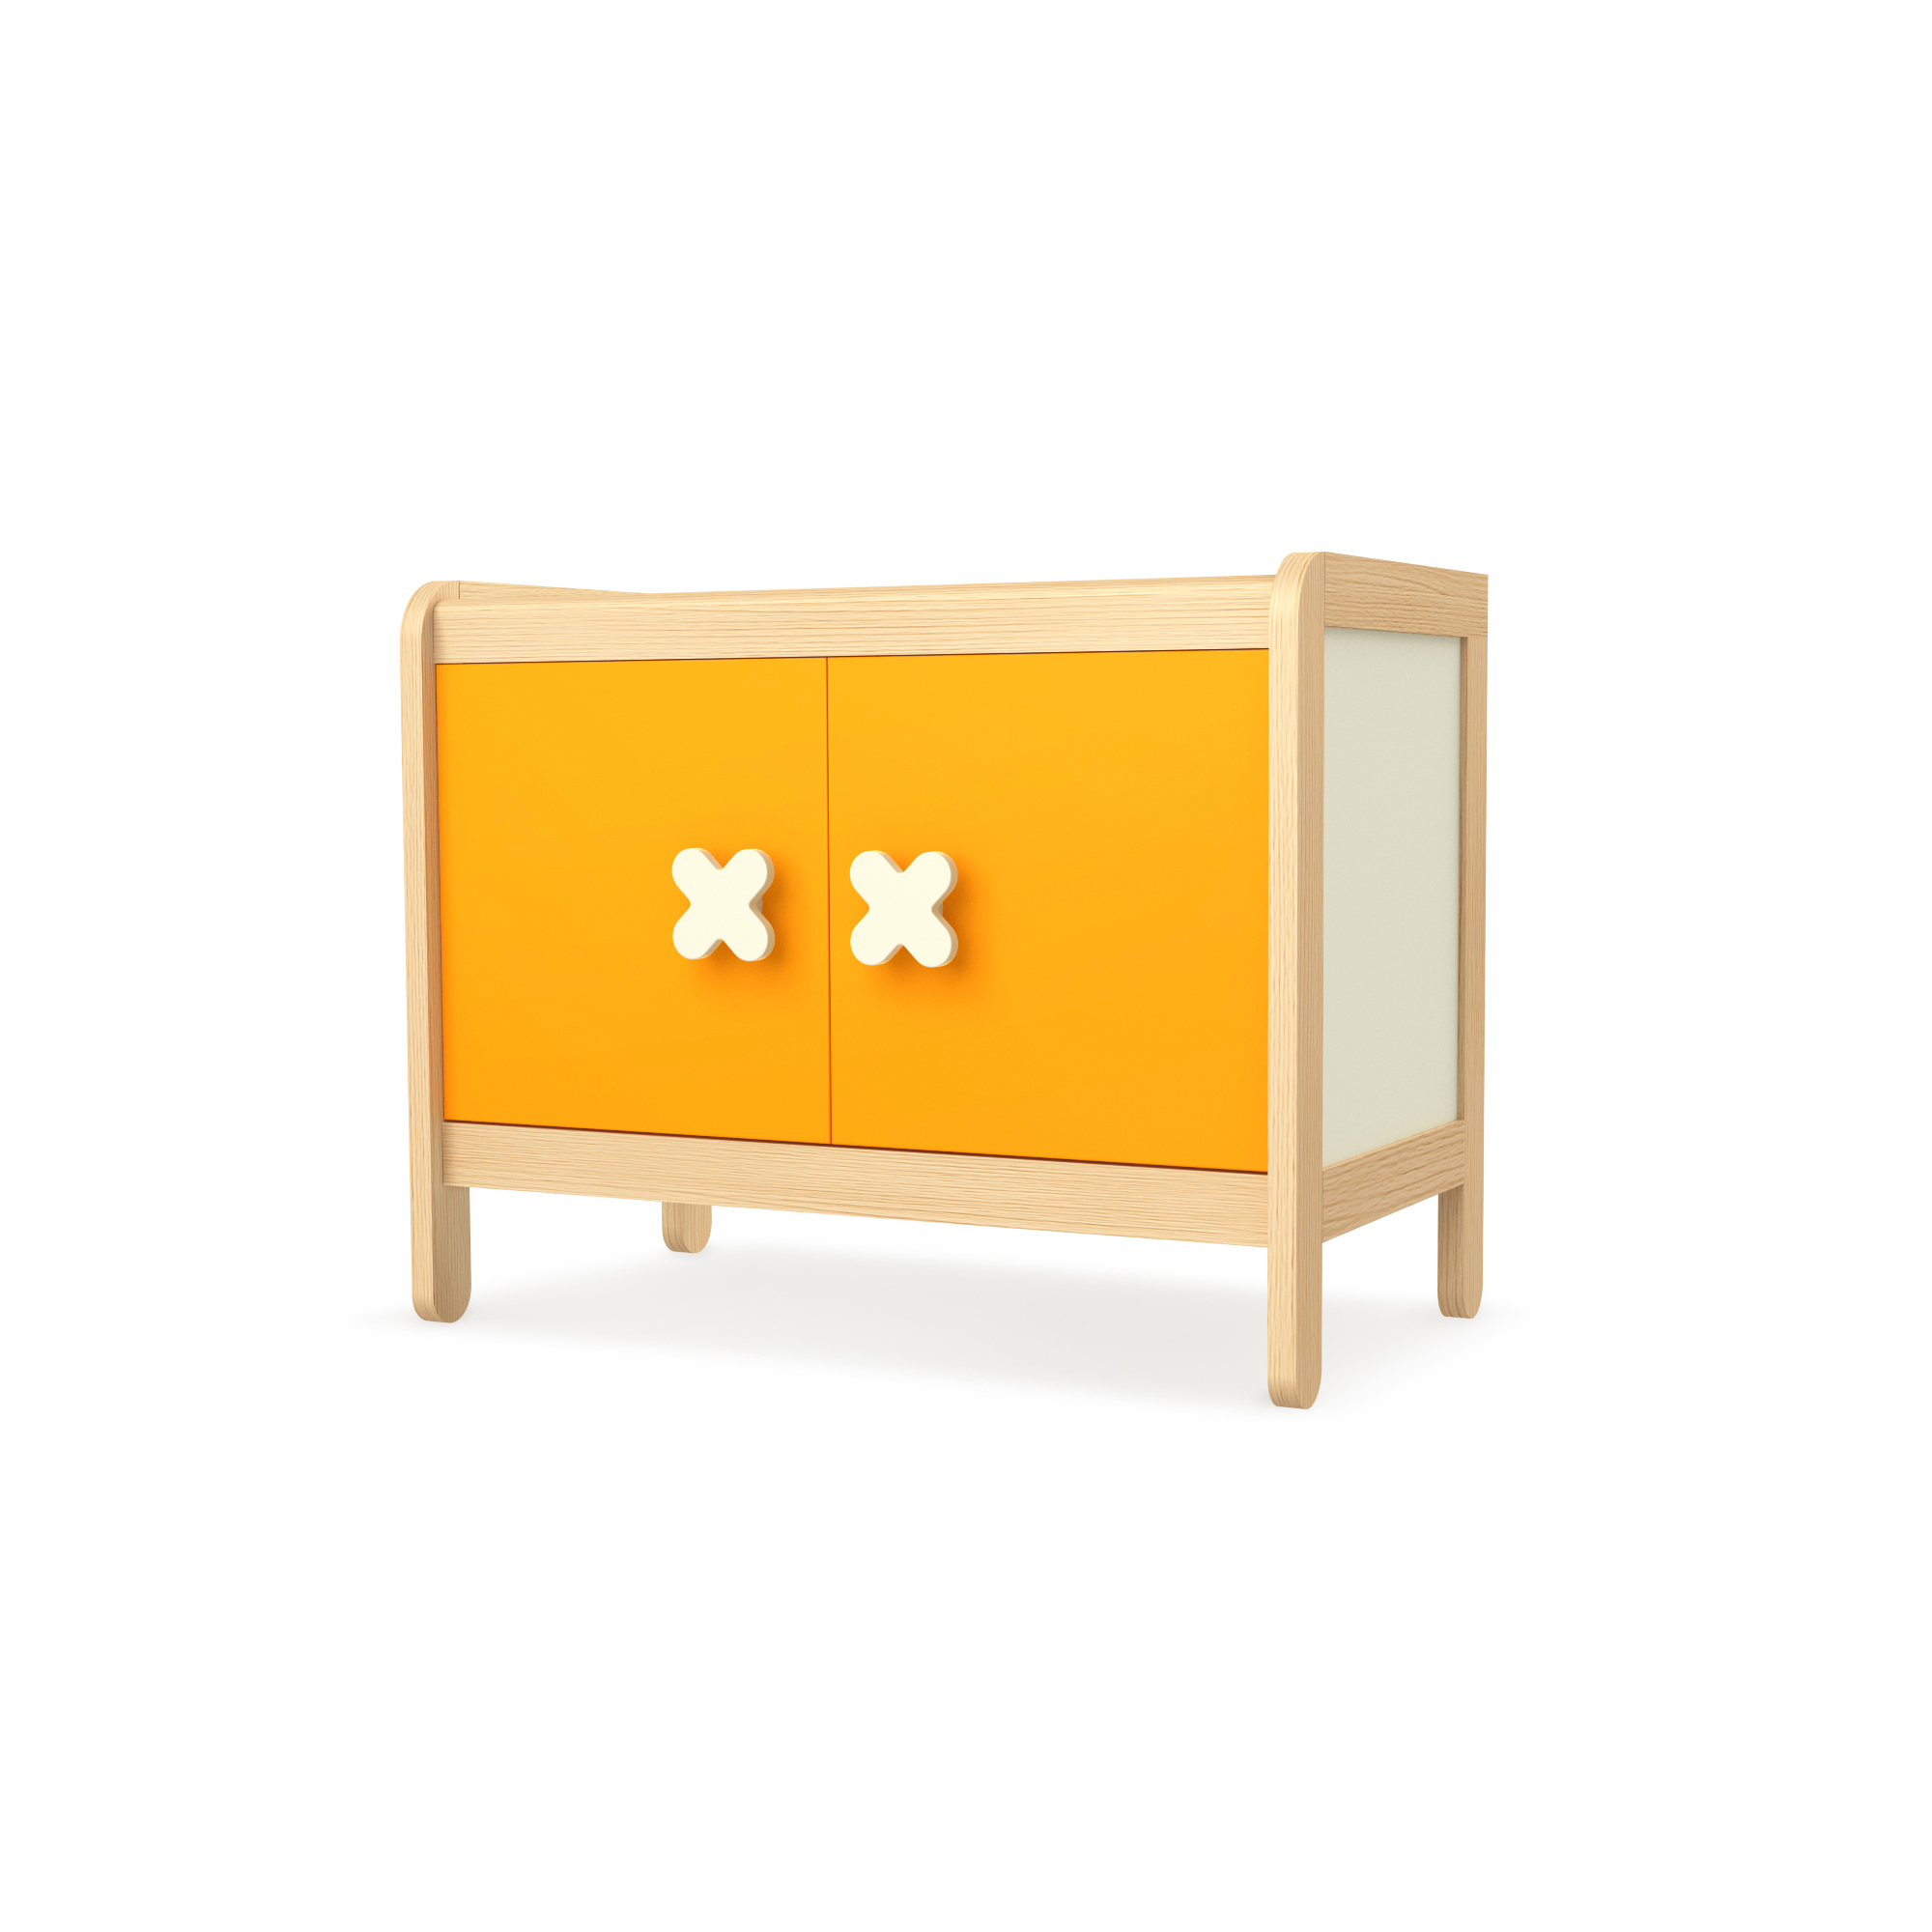 Sideboard Simple Orange, Timoore